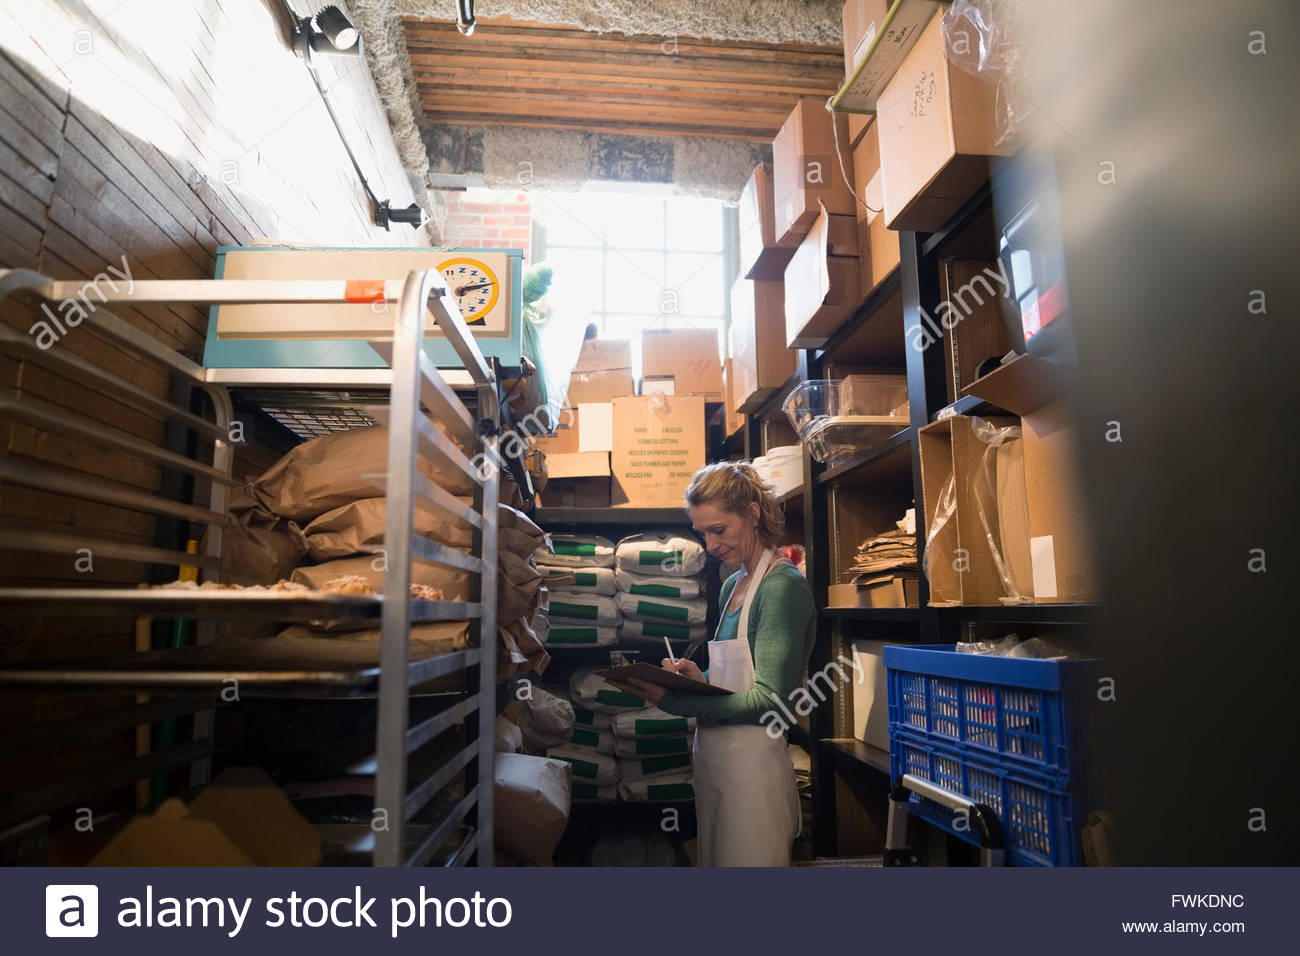 Bakery owner checking supplies inventory in storage room - Stock Image